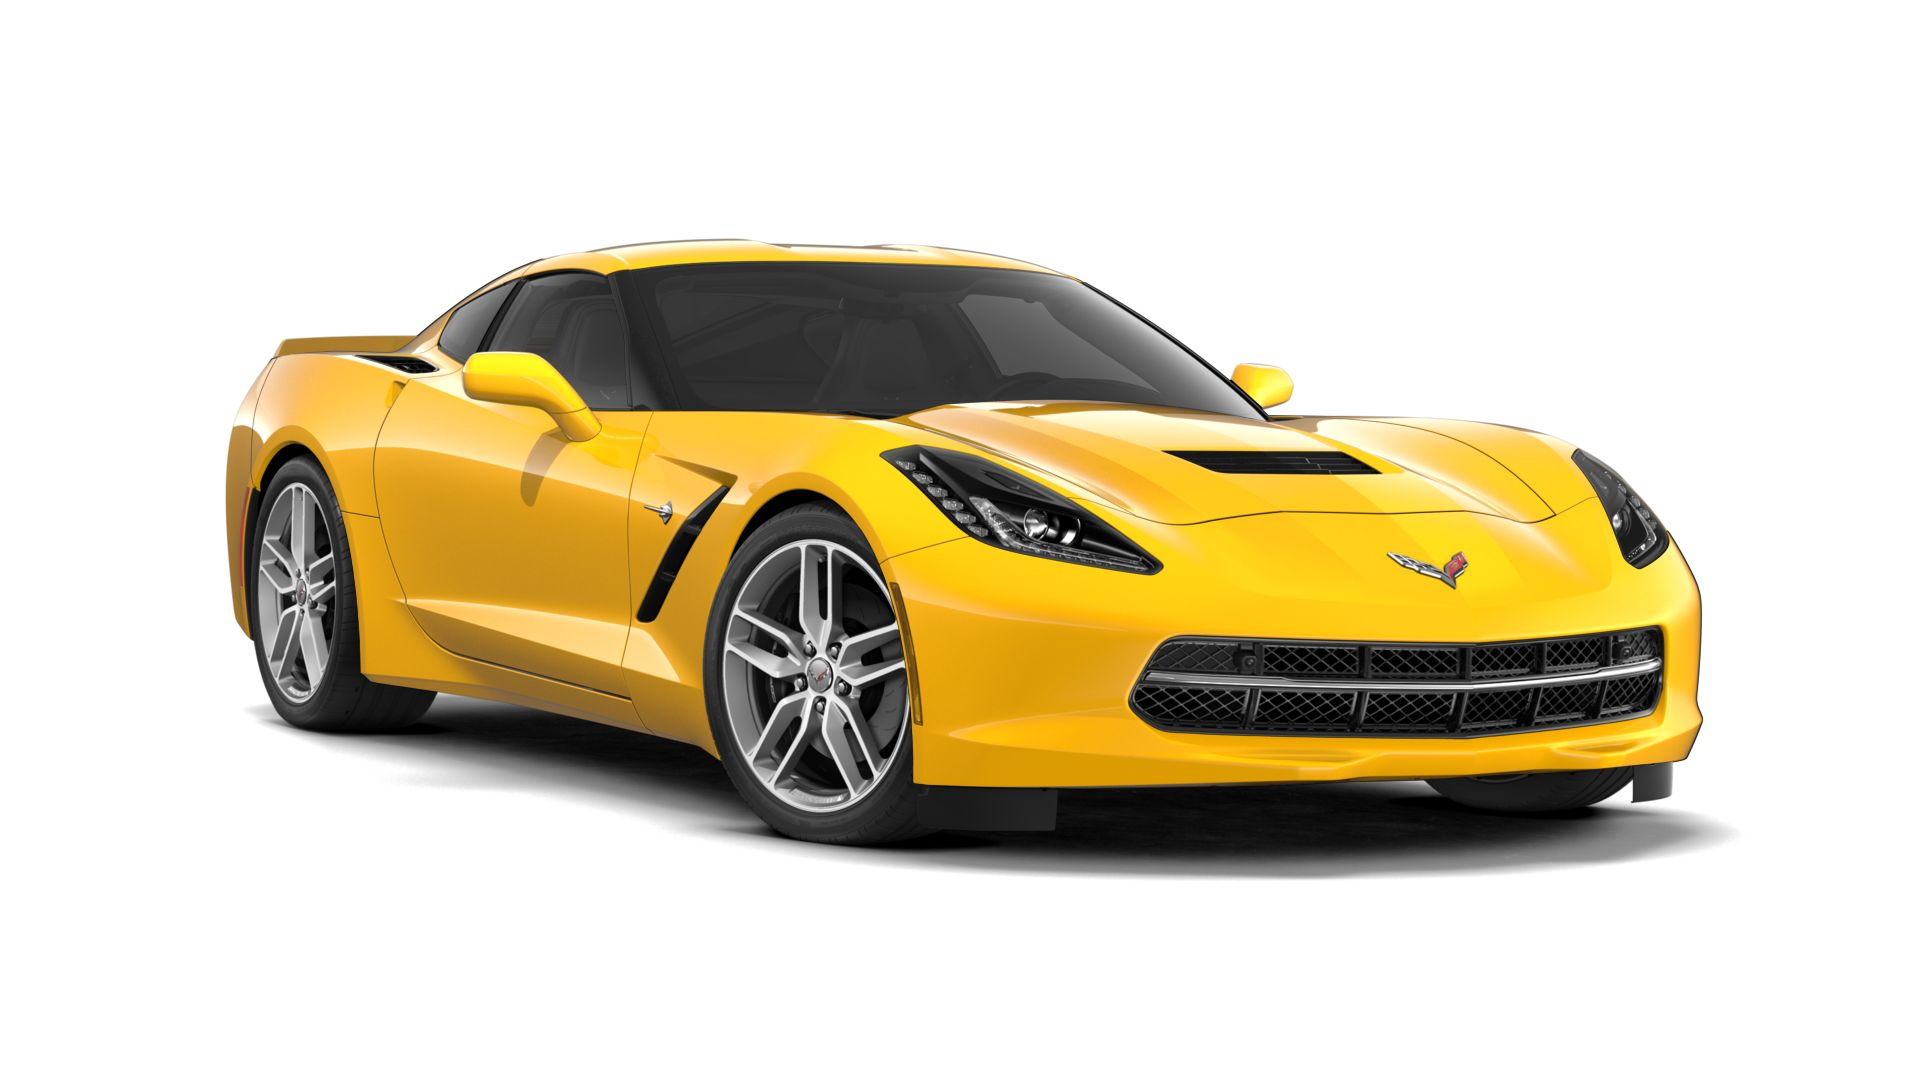 2019 Chevy Corvette 3LT WITH Z51 PERFORMANCE PACKAGE